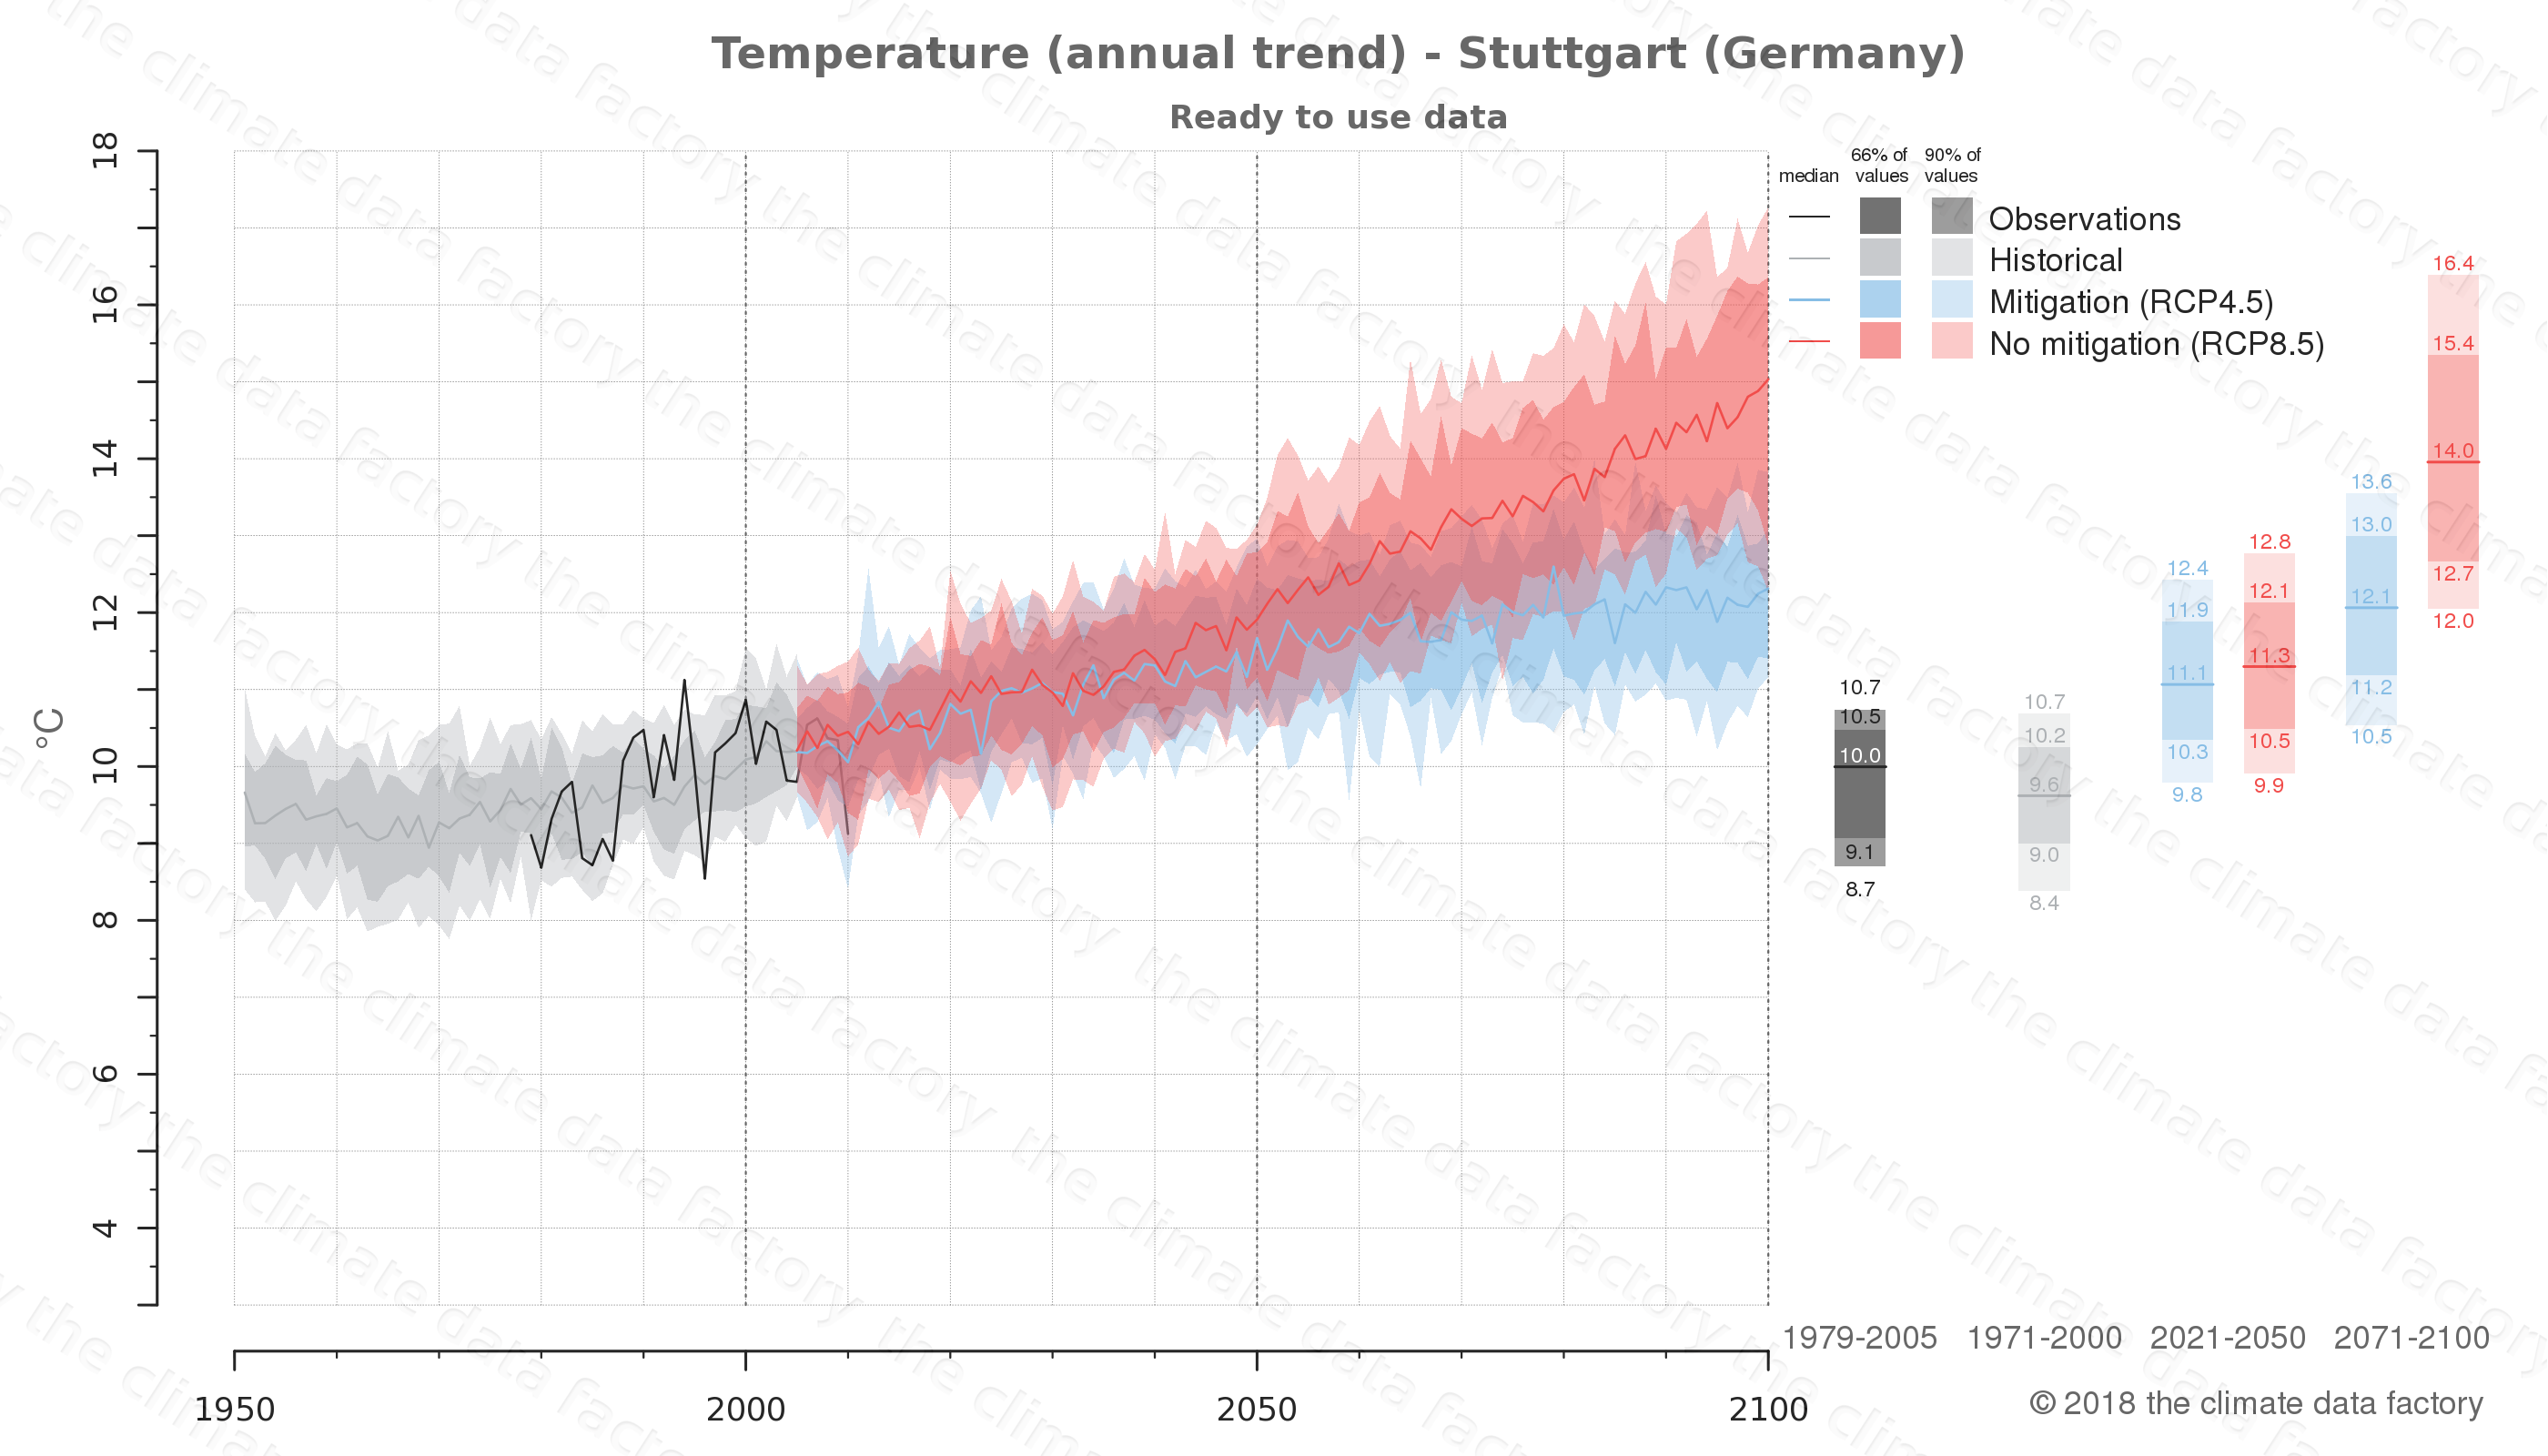 climate change data policy adaptation climate graph city data temperature stuttgart germany